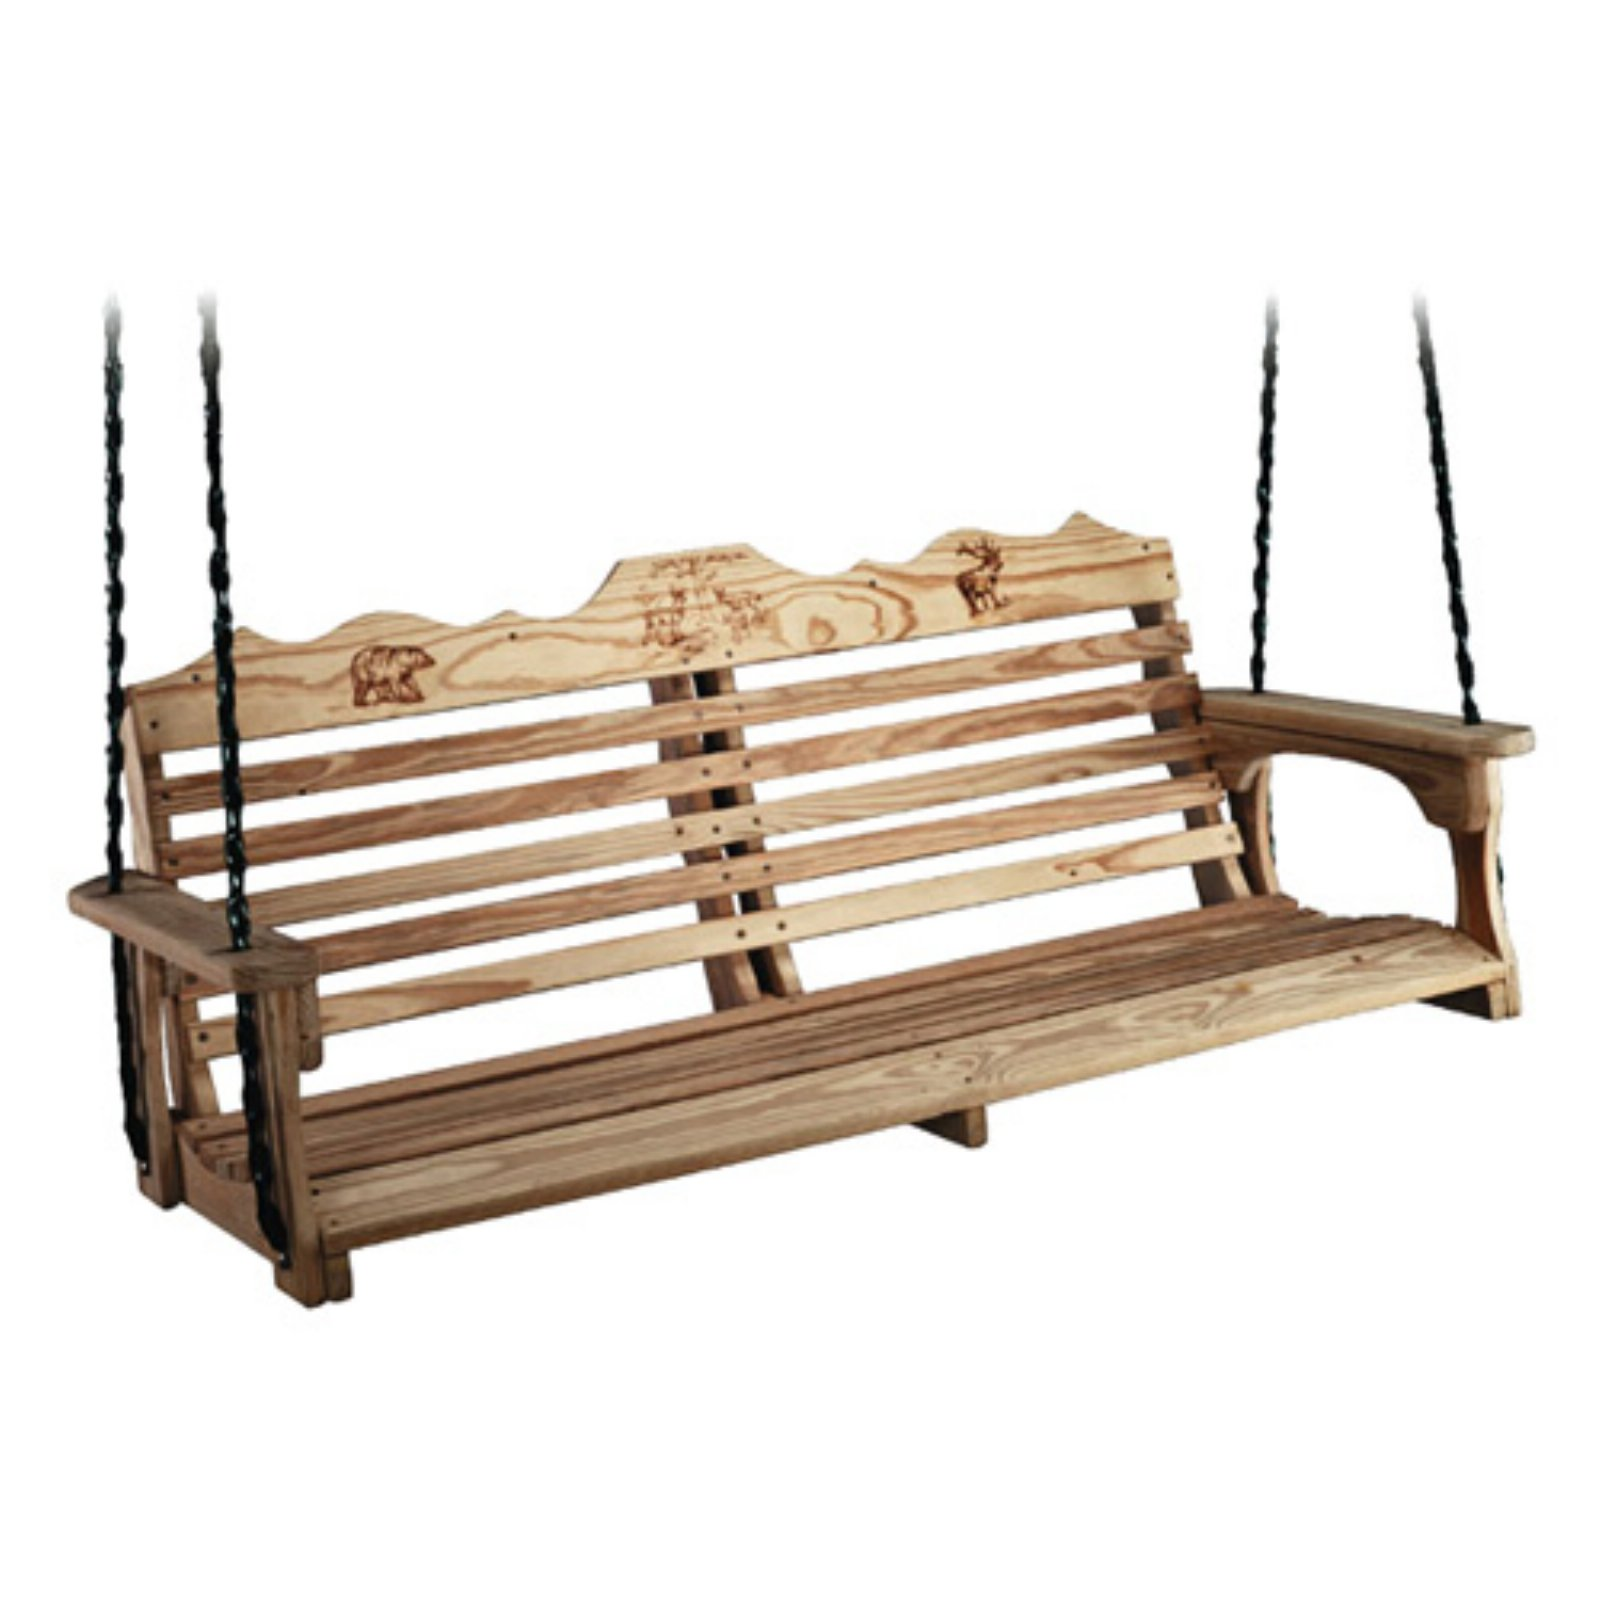 Beecham Swing Co. Deluxe Wildlife Series 5 ft. Treated Wood Porch Swing